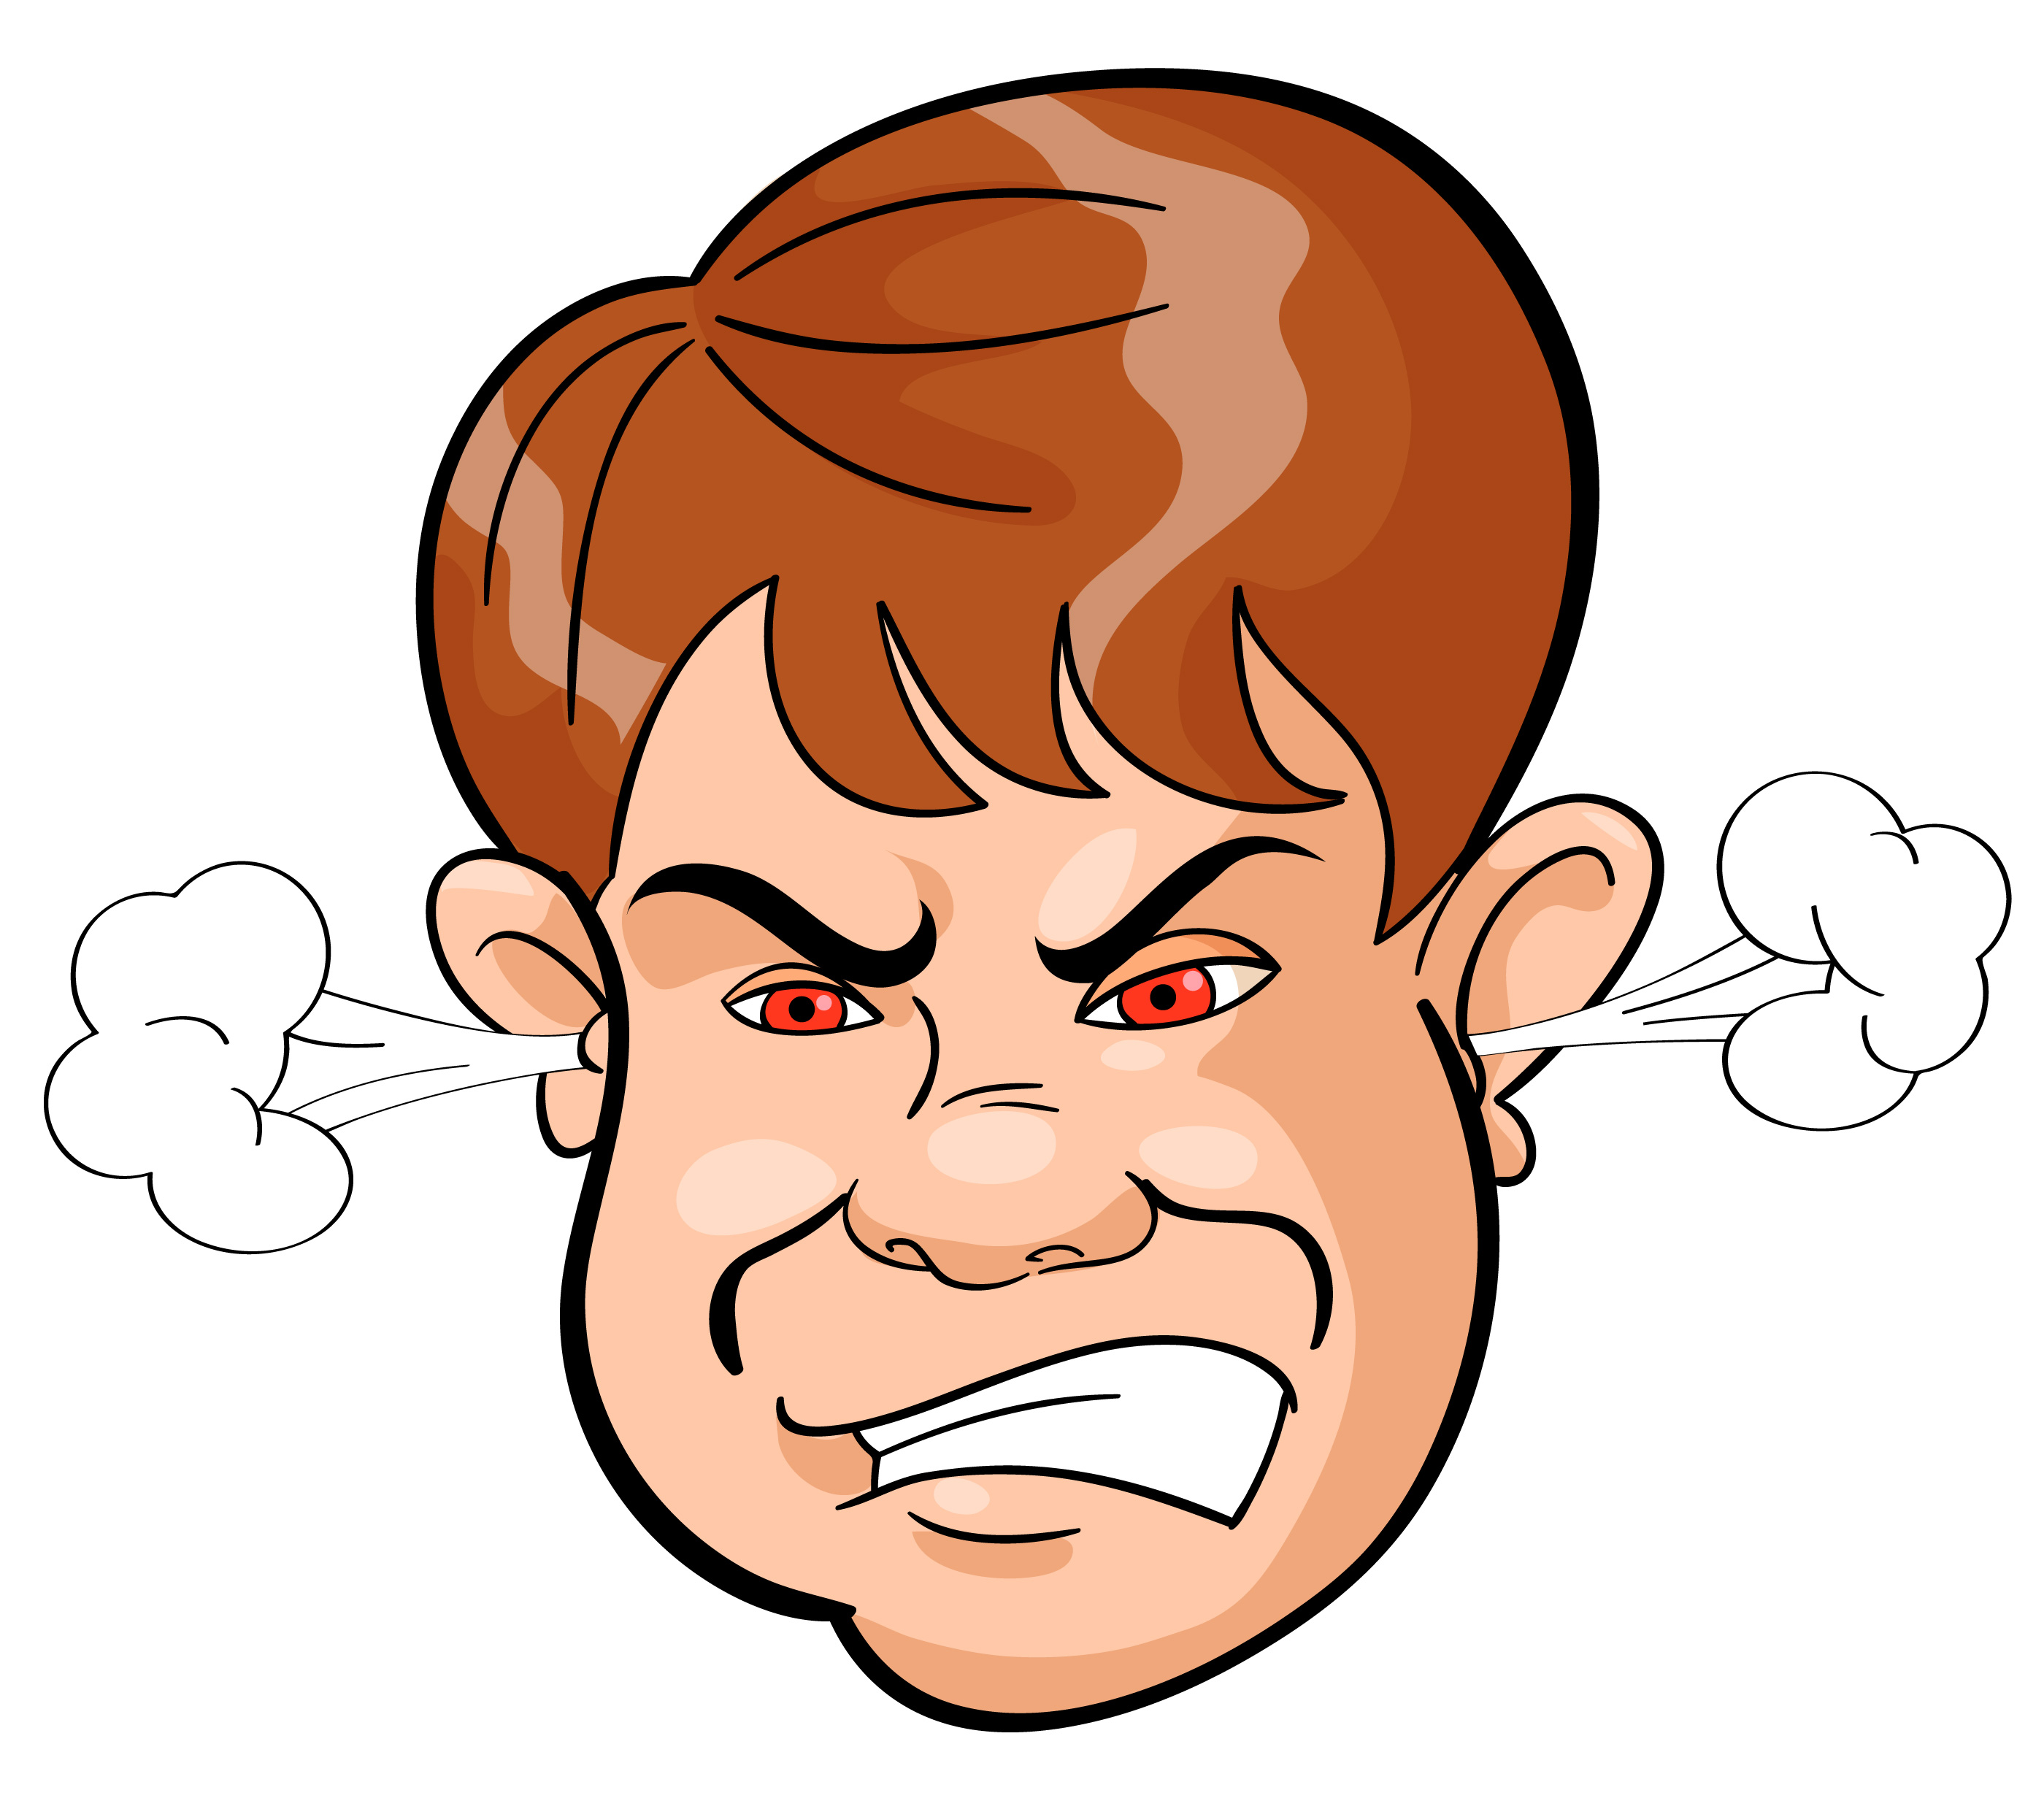 Anger Clip Art Pictures | Clipart Panda - Free Clipart Images